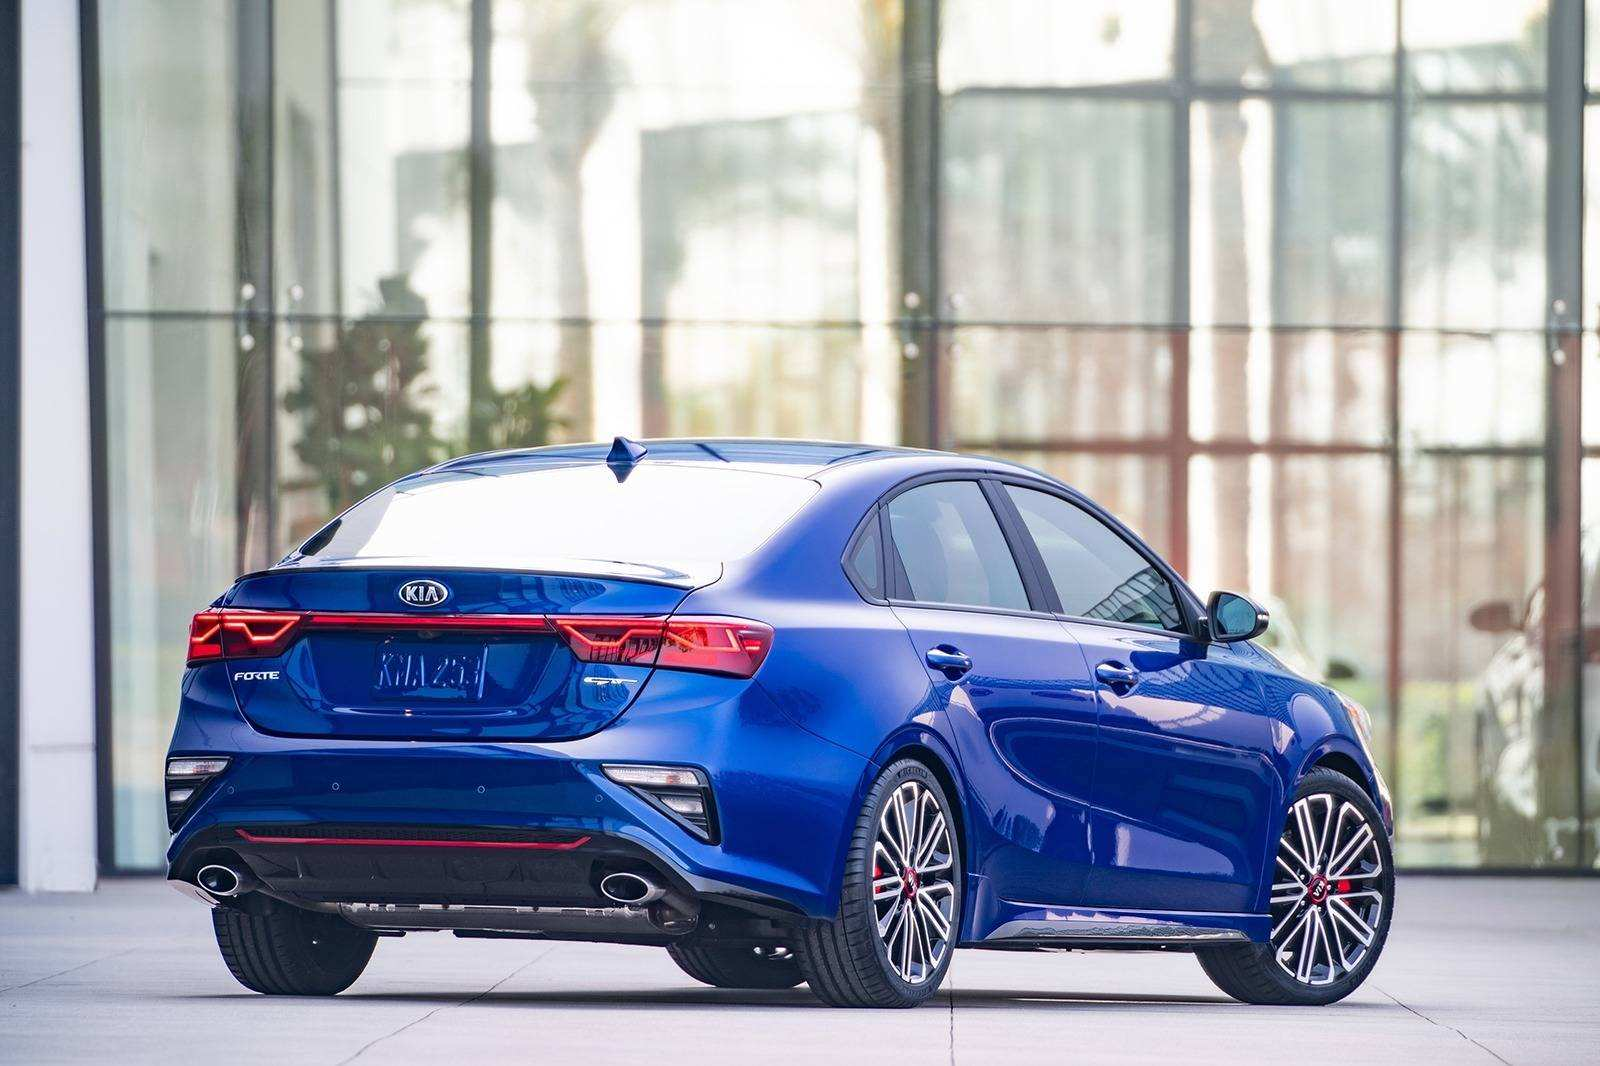 40 Concept of Kia Forte Gt 2020 Price Specs with Kia Forte Gt 2020 Price